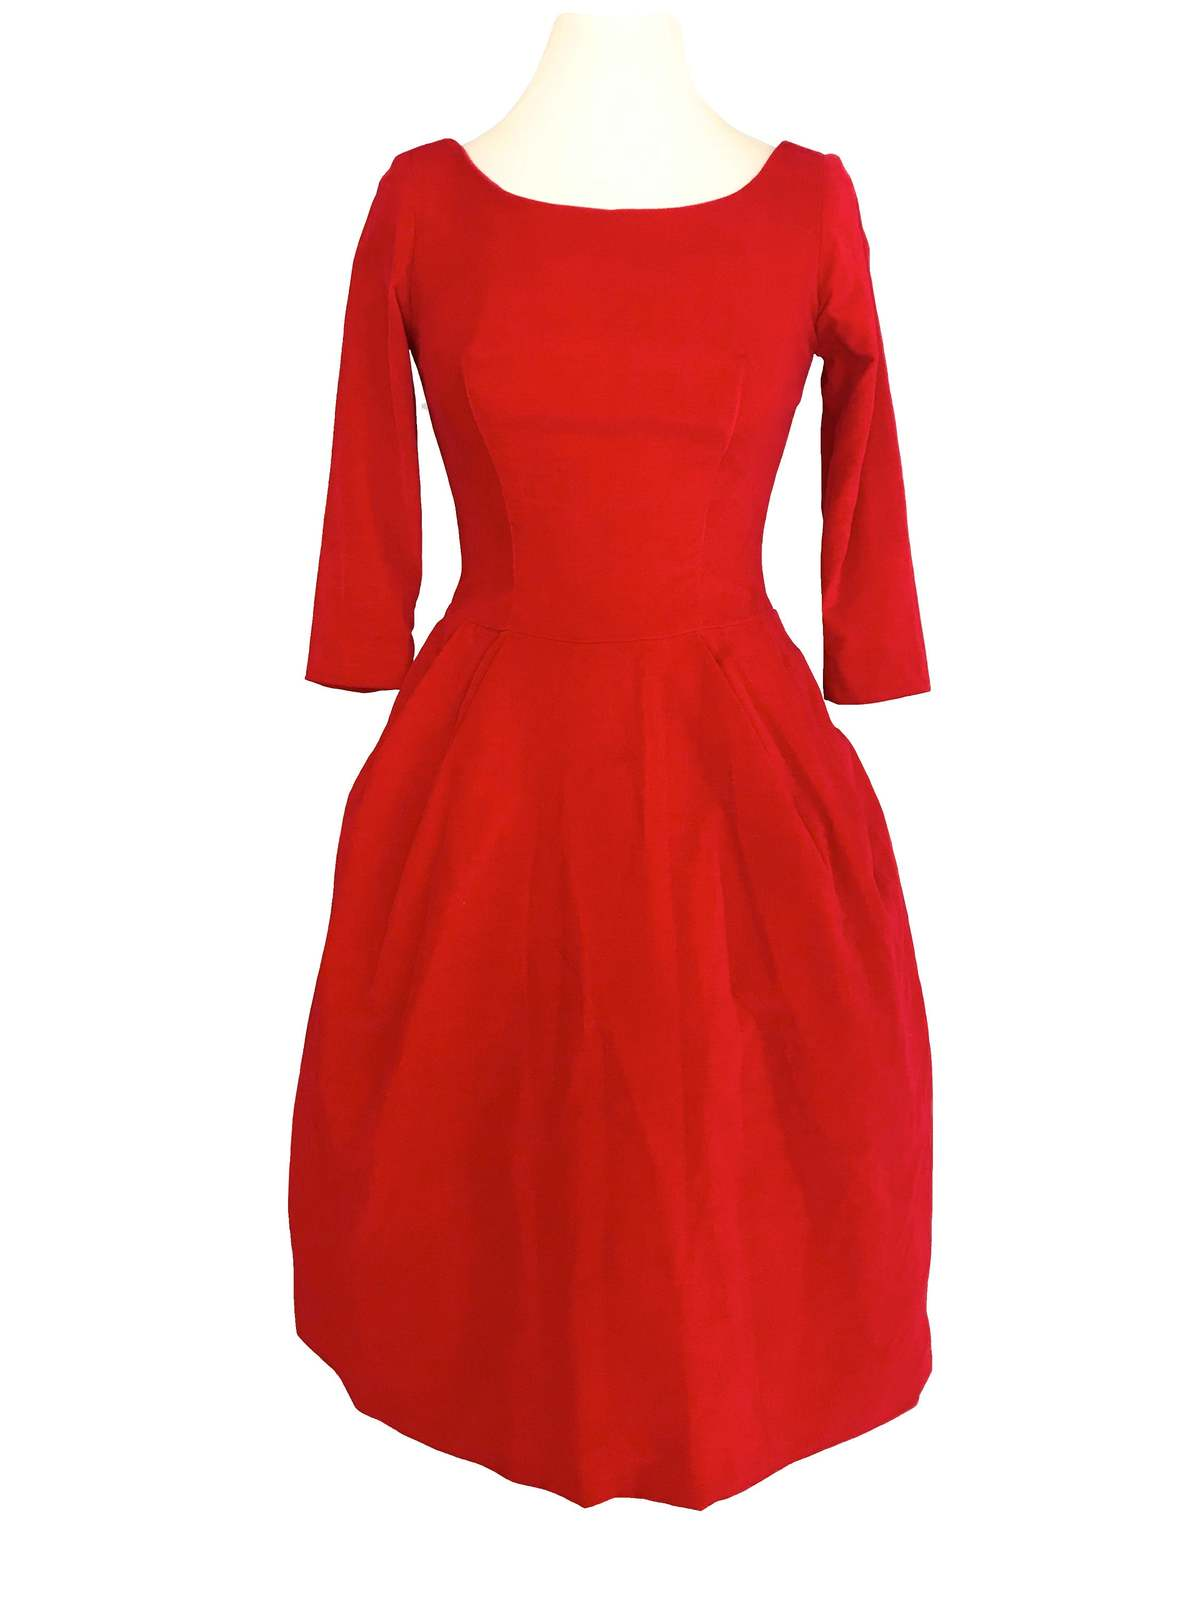 50s Poppy Red Velvet Fit & Flare Xmas Party Bubble Skirt Pin Up Rockabilly Dress image 2